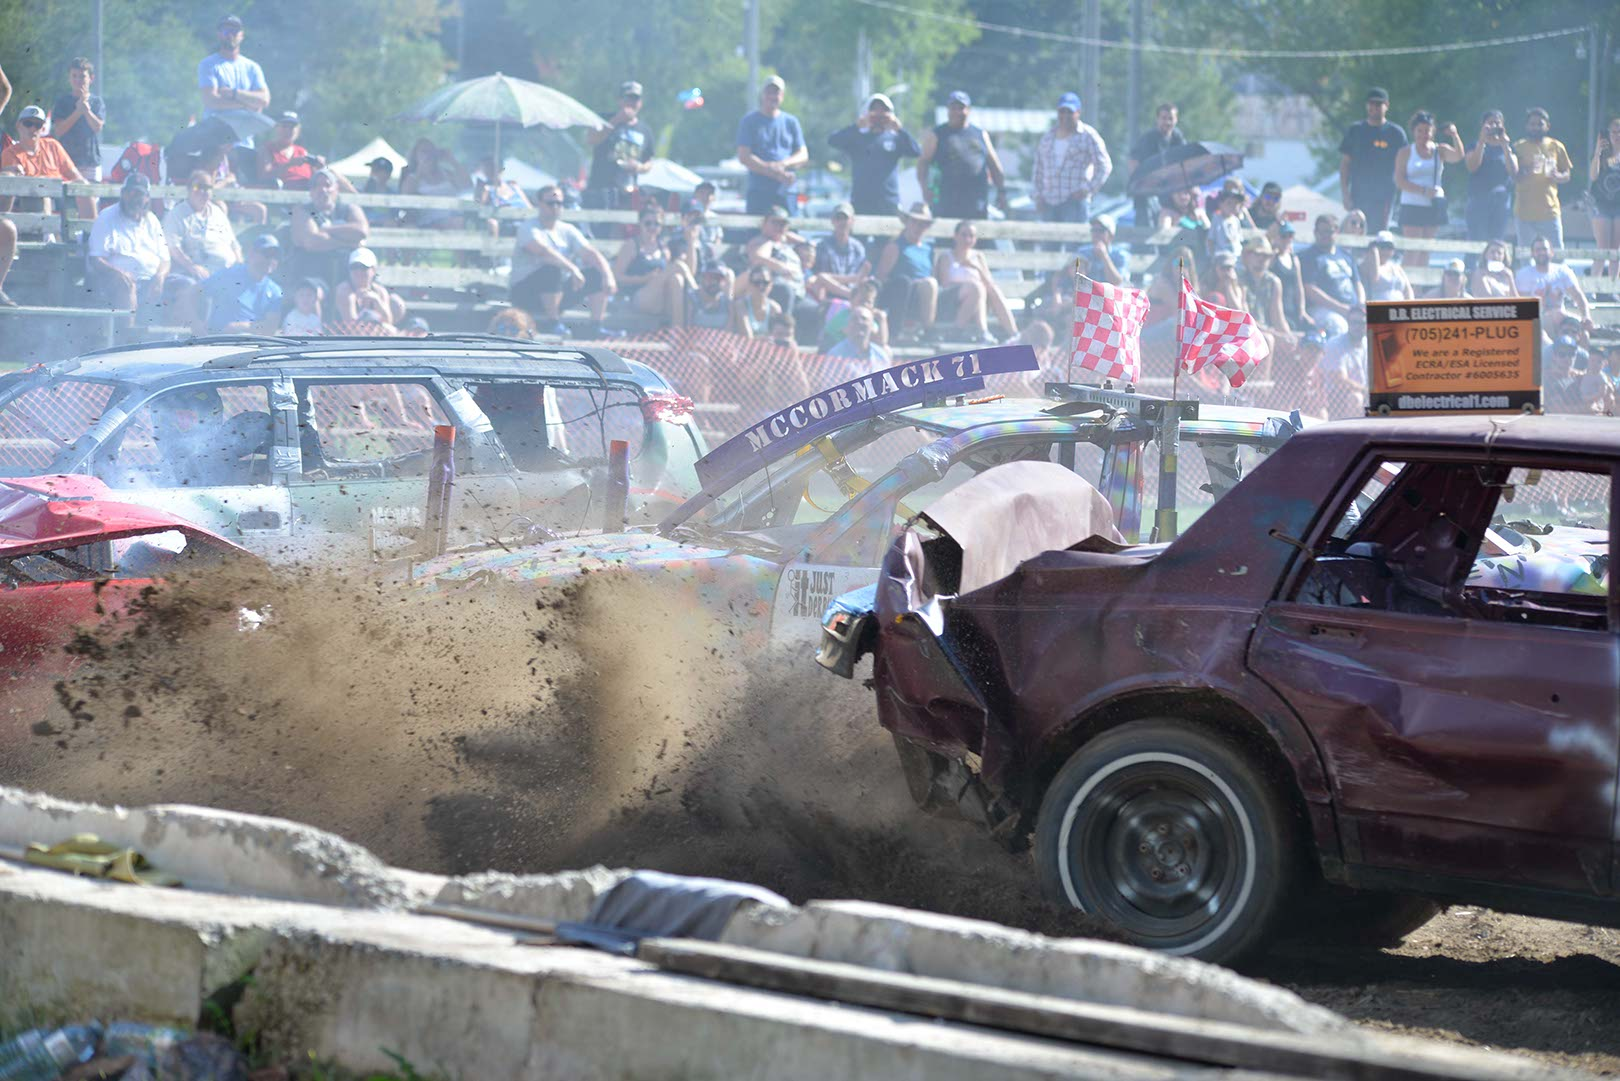 Demolition Derby at Beeton Fair